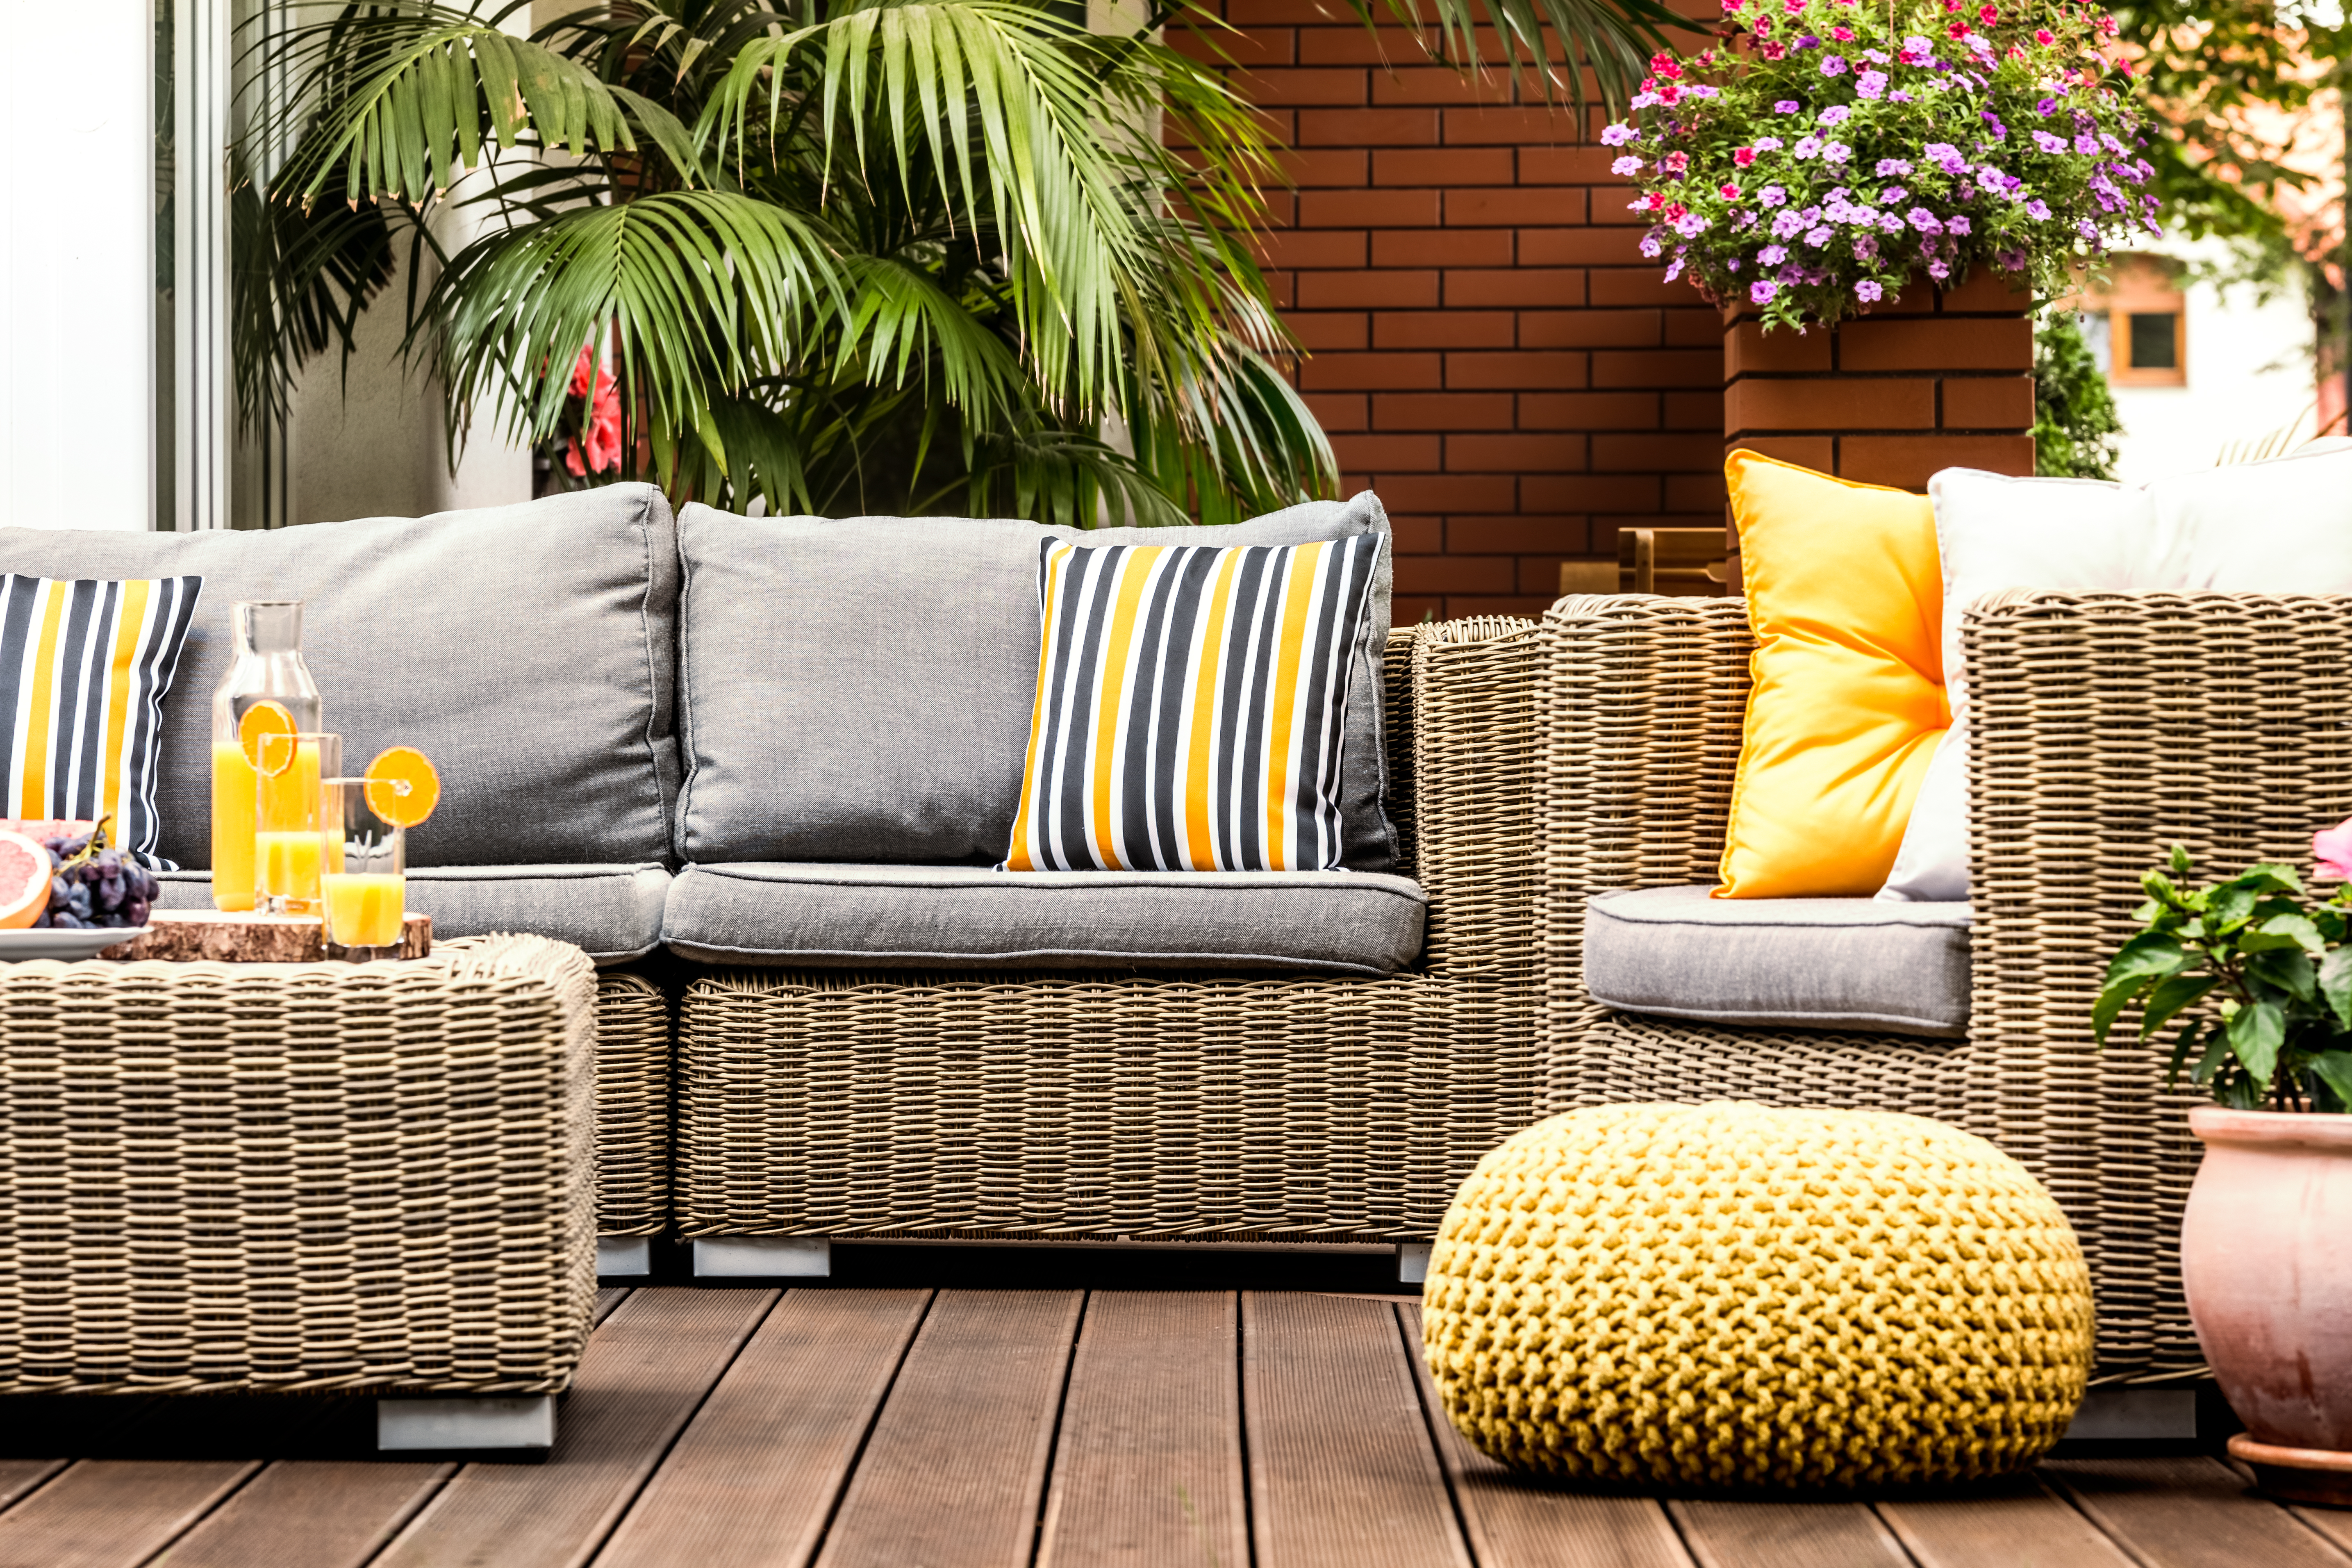 How To Get Rid Of Mildew Stains On Outdoor Fabric Furniture Home